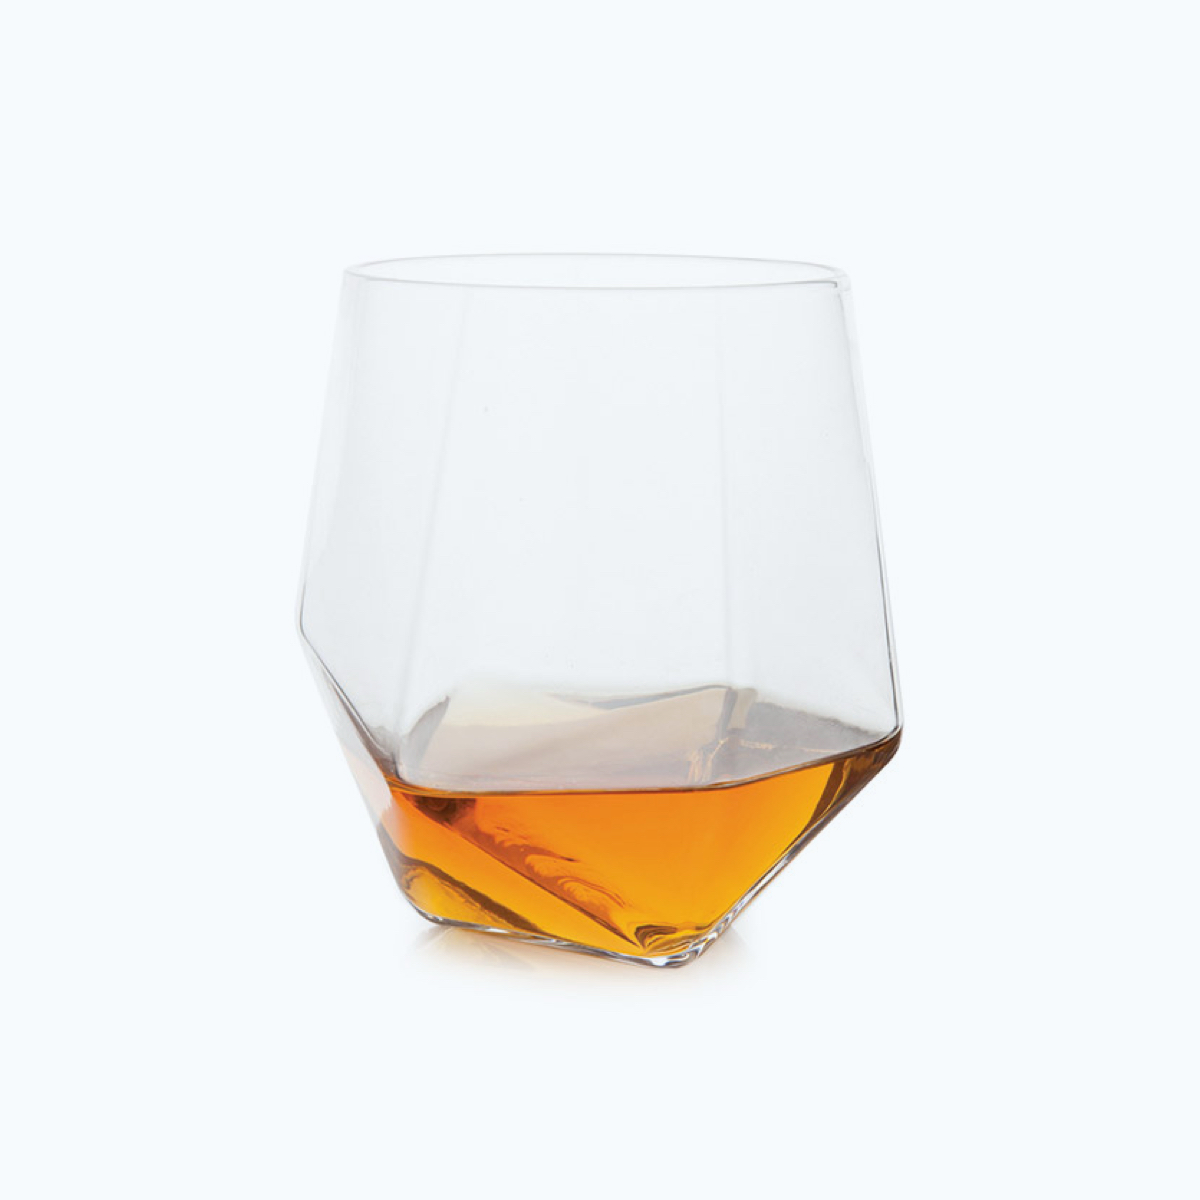 Geometric Whiskey Tumbler, Set of 2